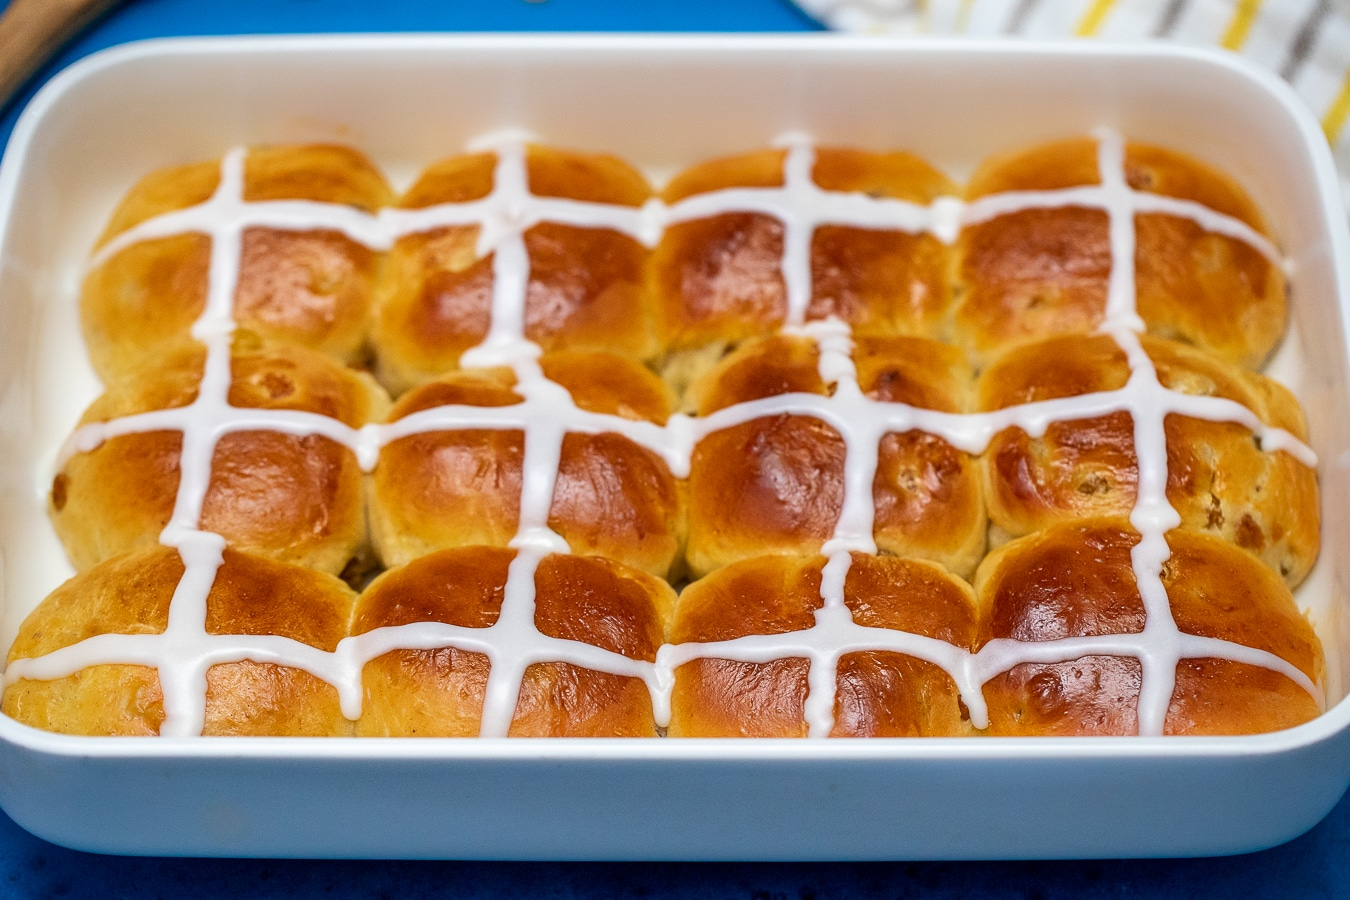 Baking dish filled with hot cross buns